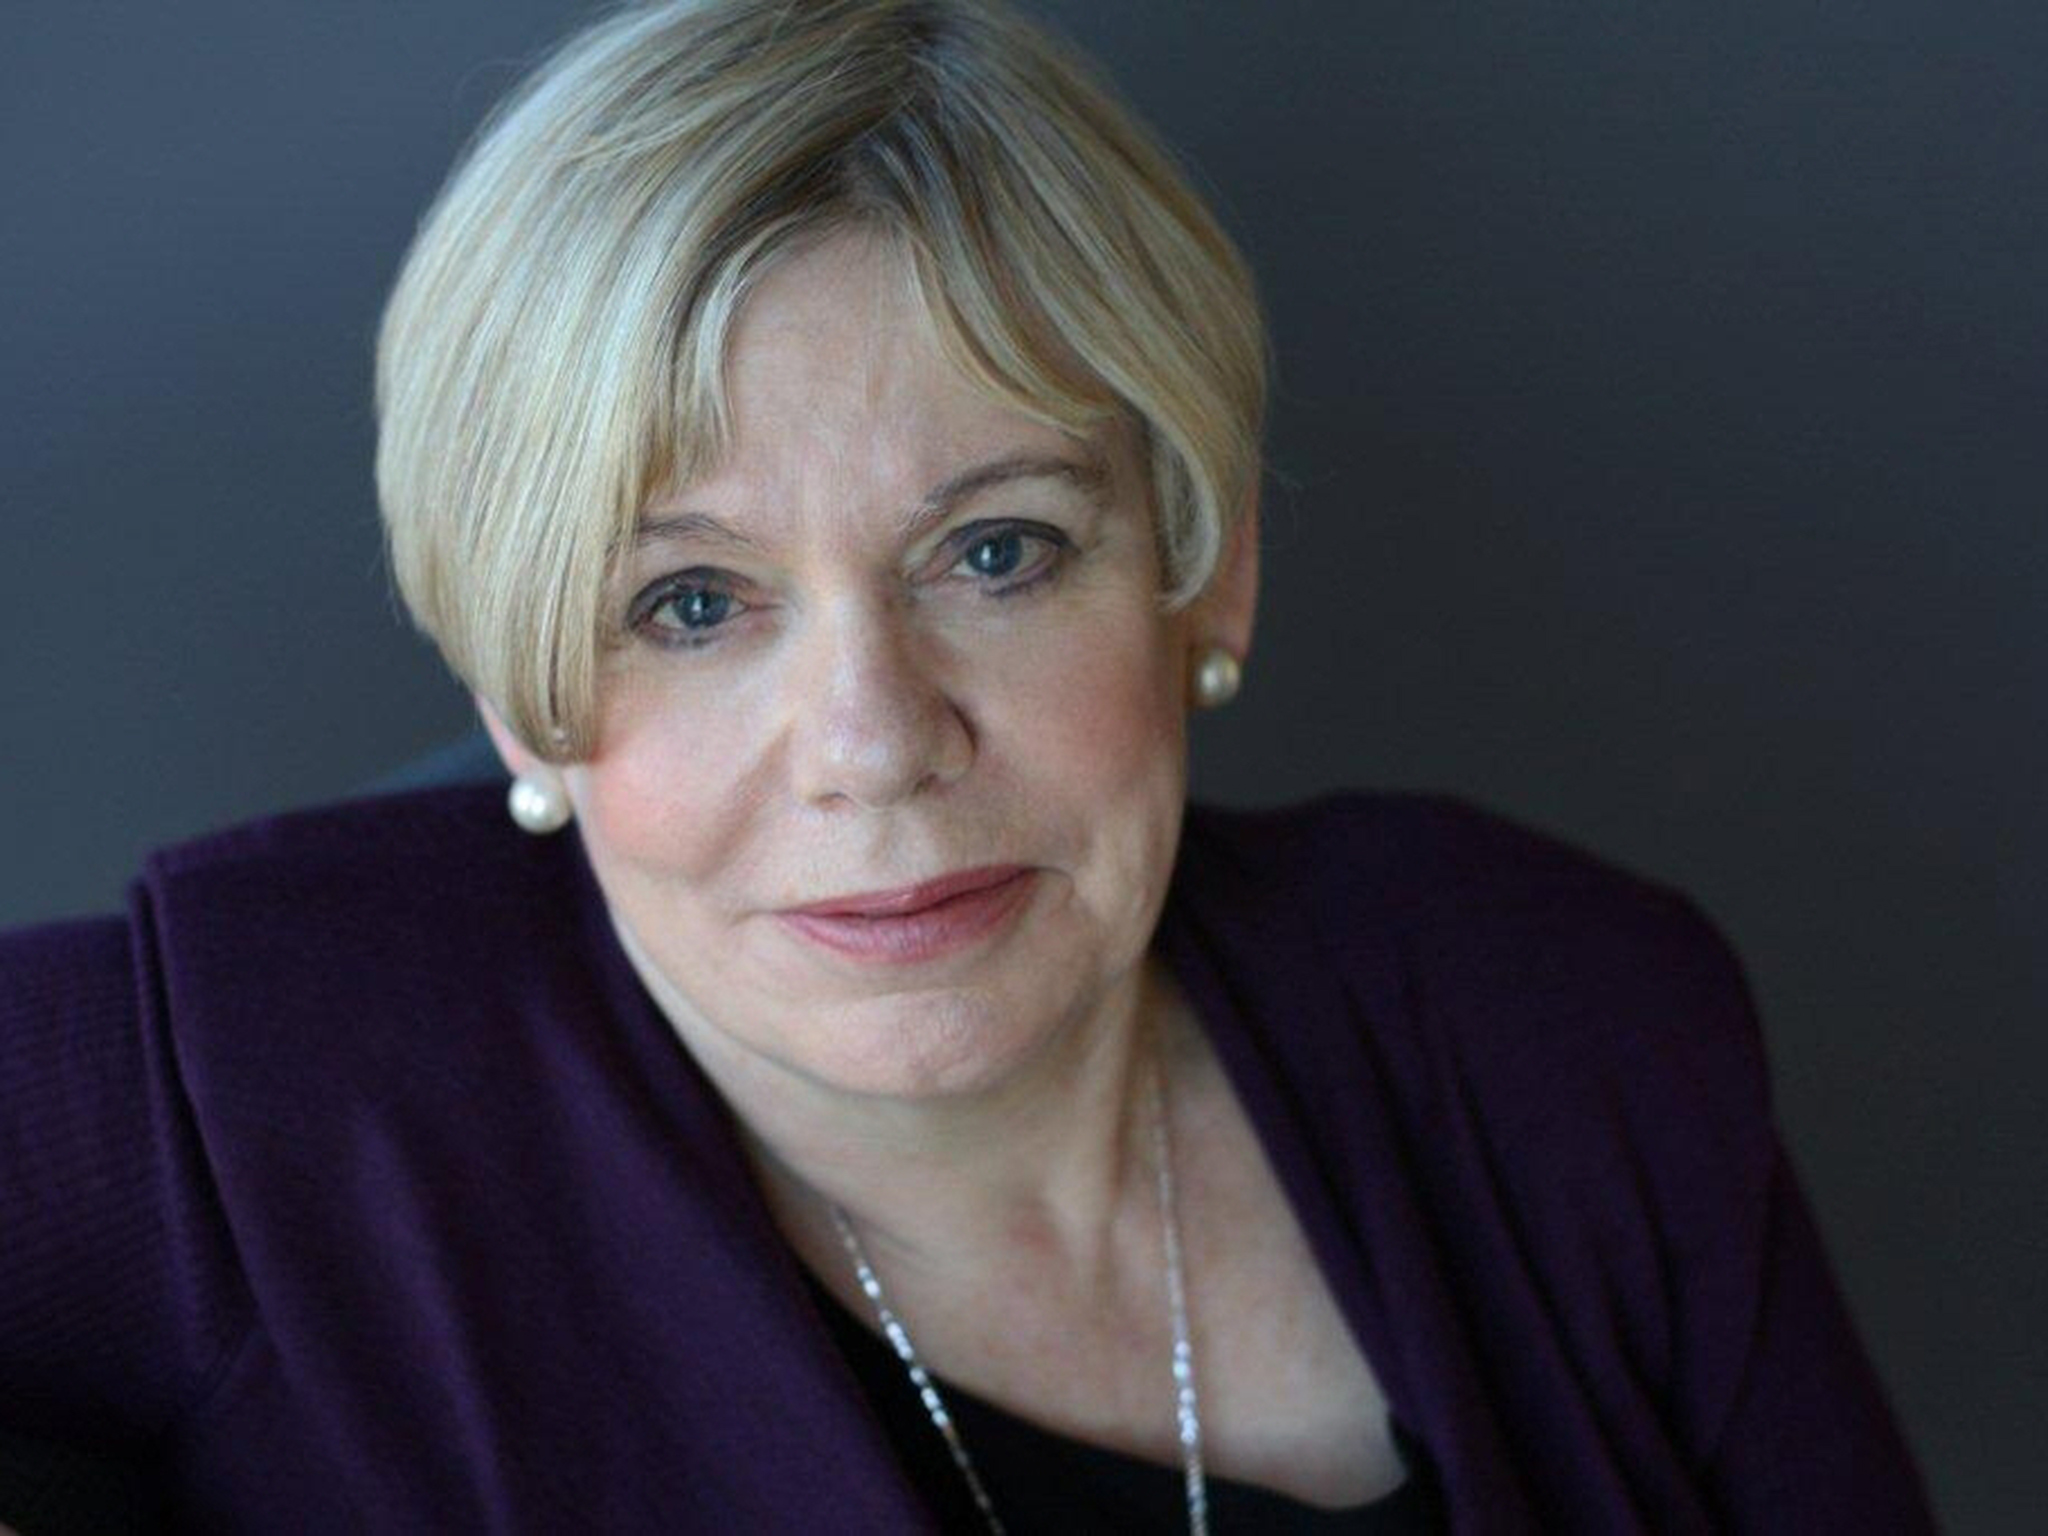 Karen Armstrong c Michael Lionstar press image from  Pickering, Joe